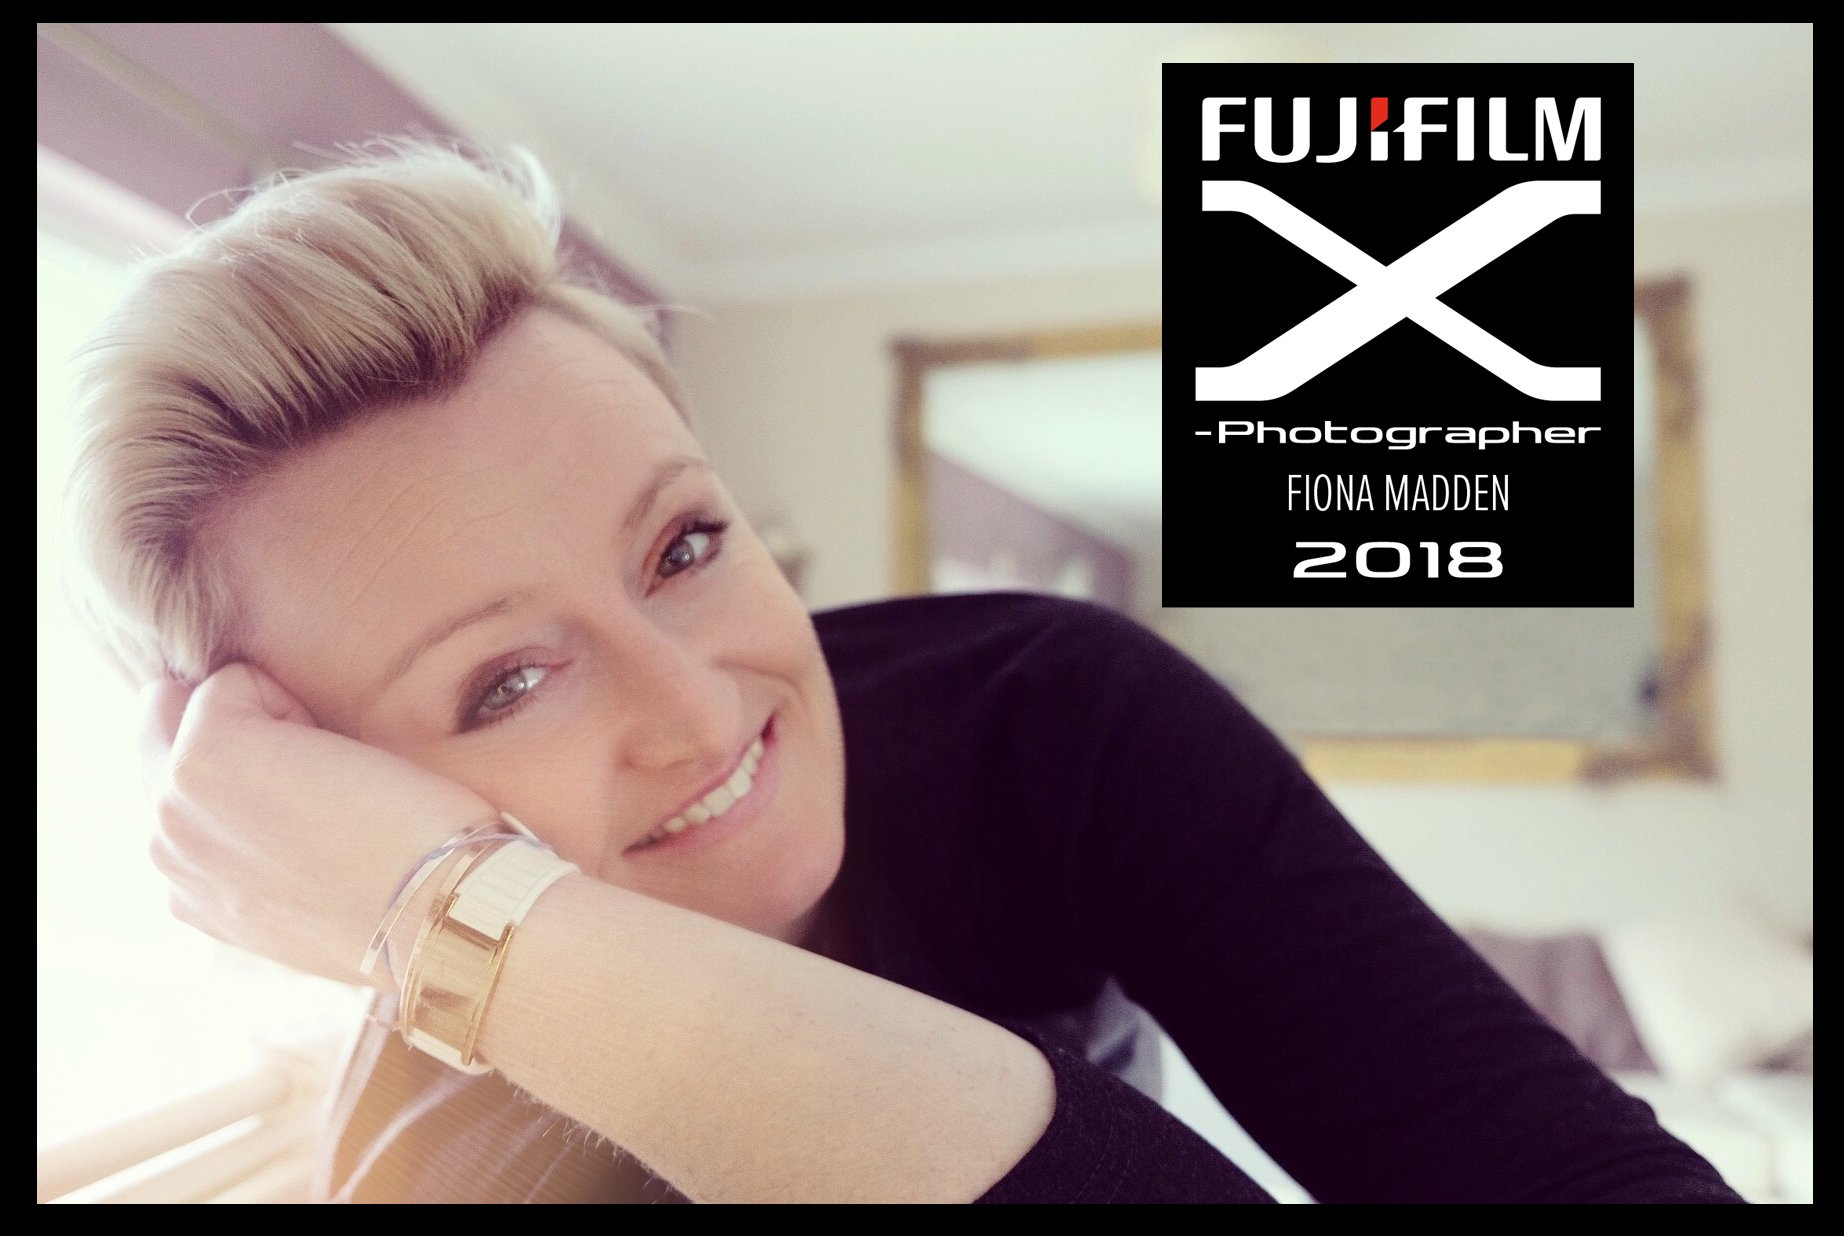 Fujifilm X Photographer Ireland